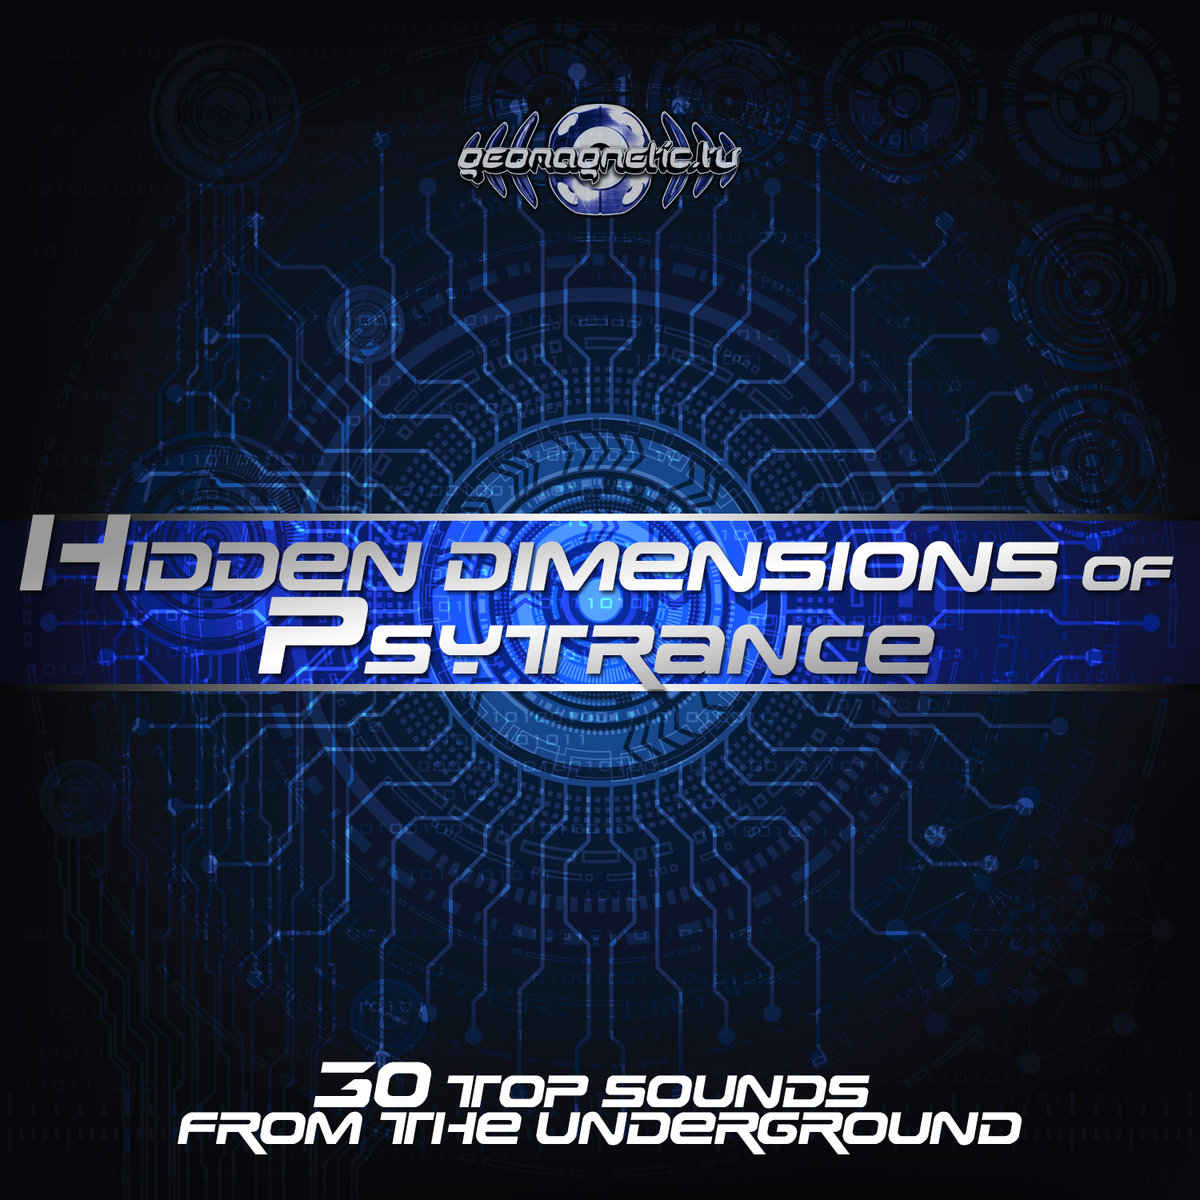 Nxa - Under the Water @ 'Various Artists - Hidden Dimensions of Psytrance (30 Top Sounds From The Underground)' album (electronic, goa)